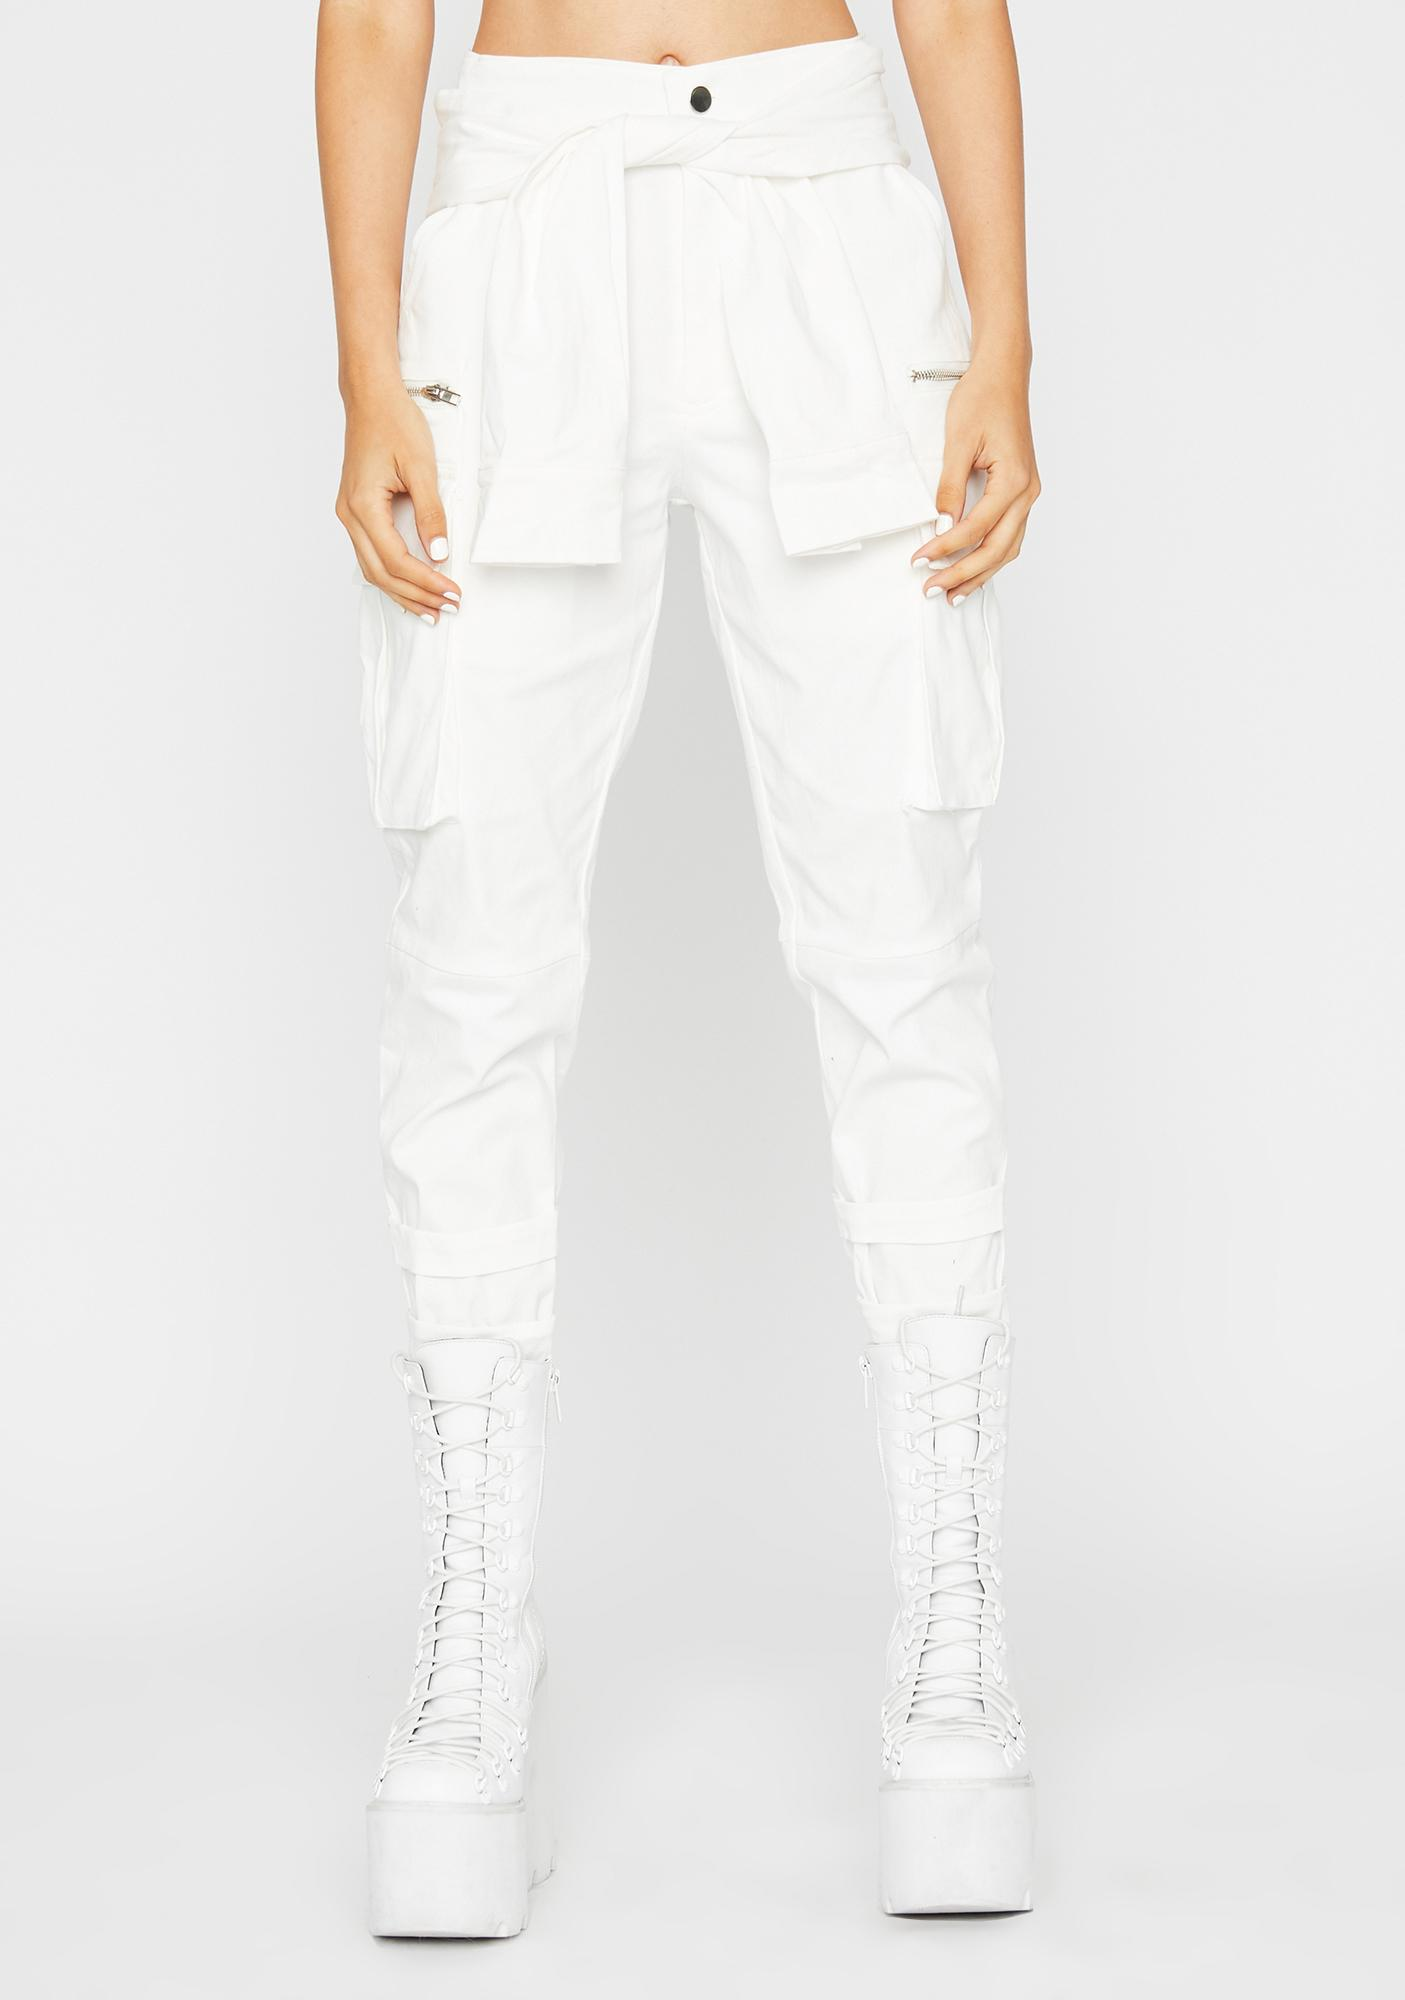 Iced Feisty Fuel Cargo Pants